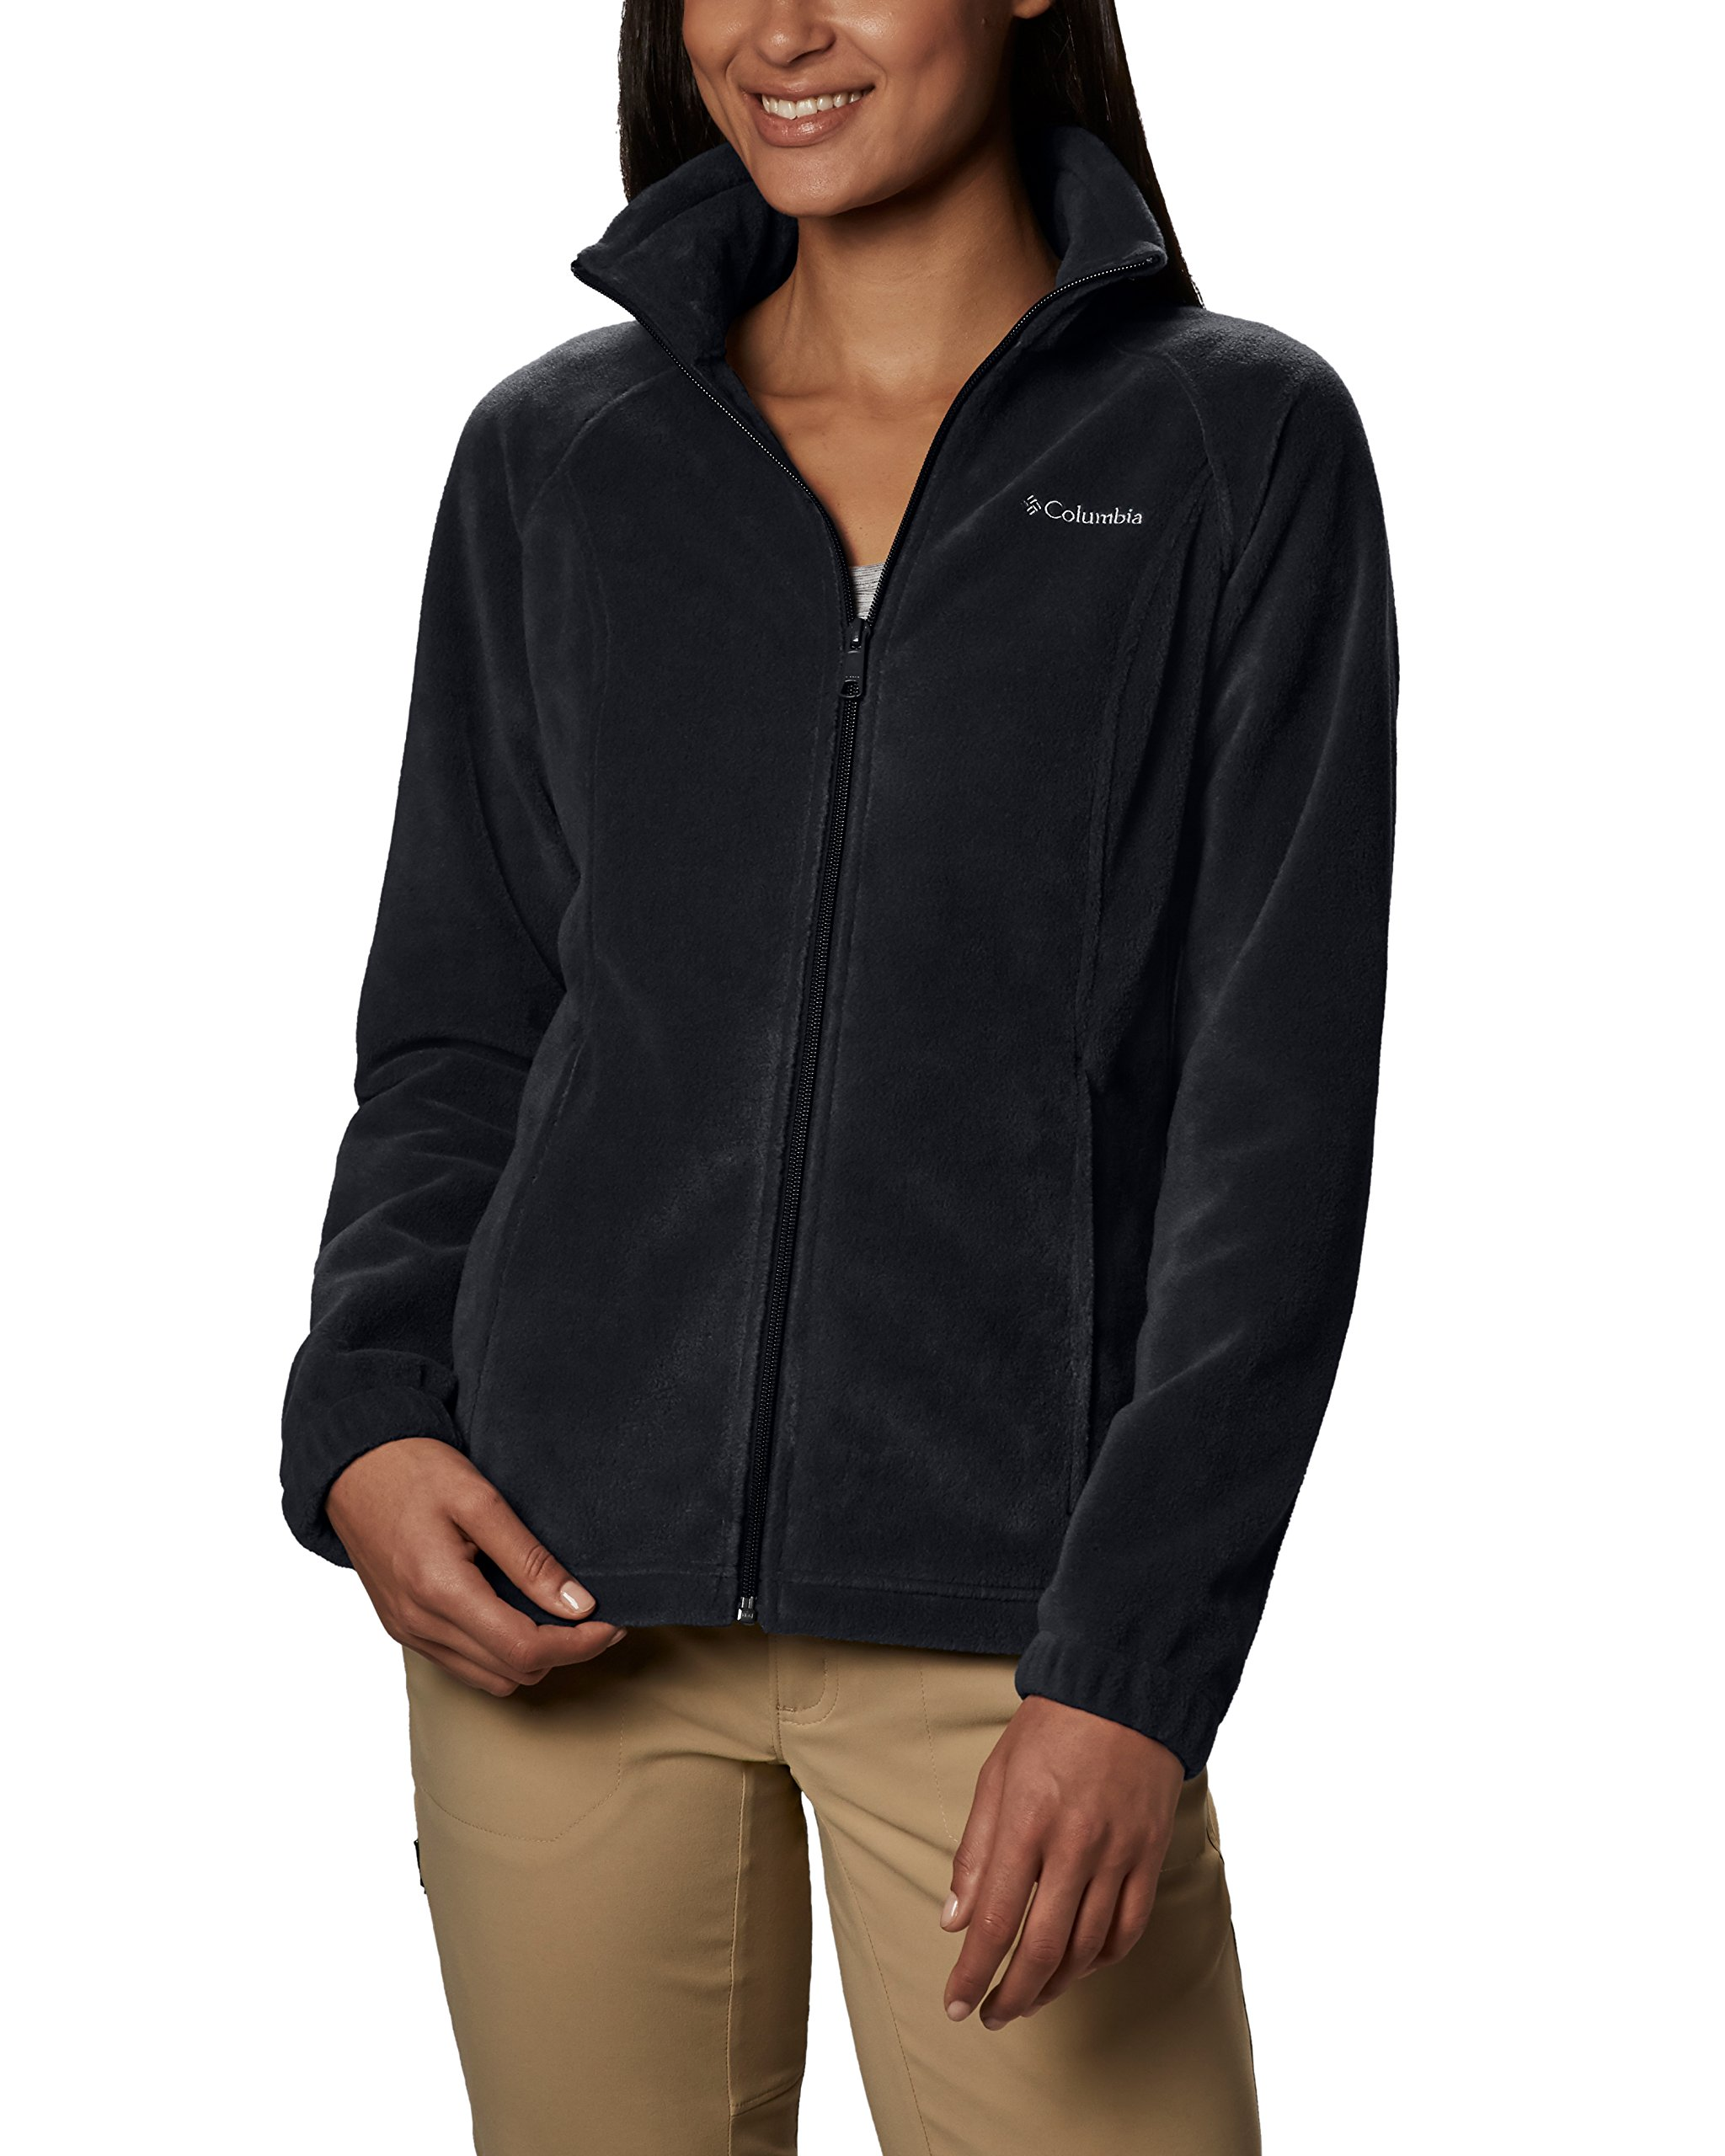 Columbia Women's Benton Springs Classic Fit Full Zip Soft Fleece Jacket, black, M